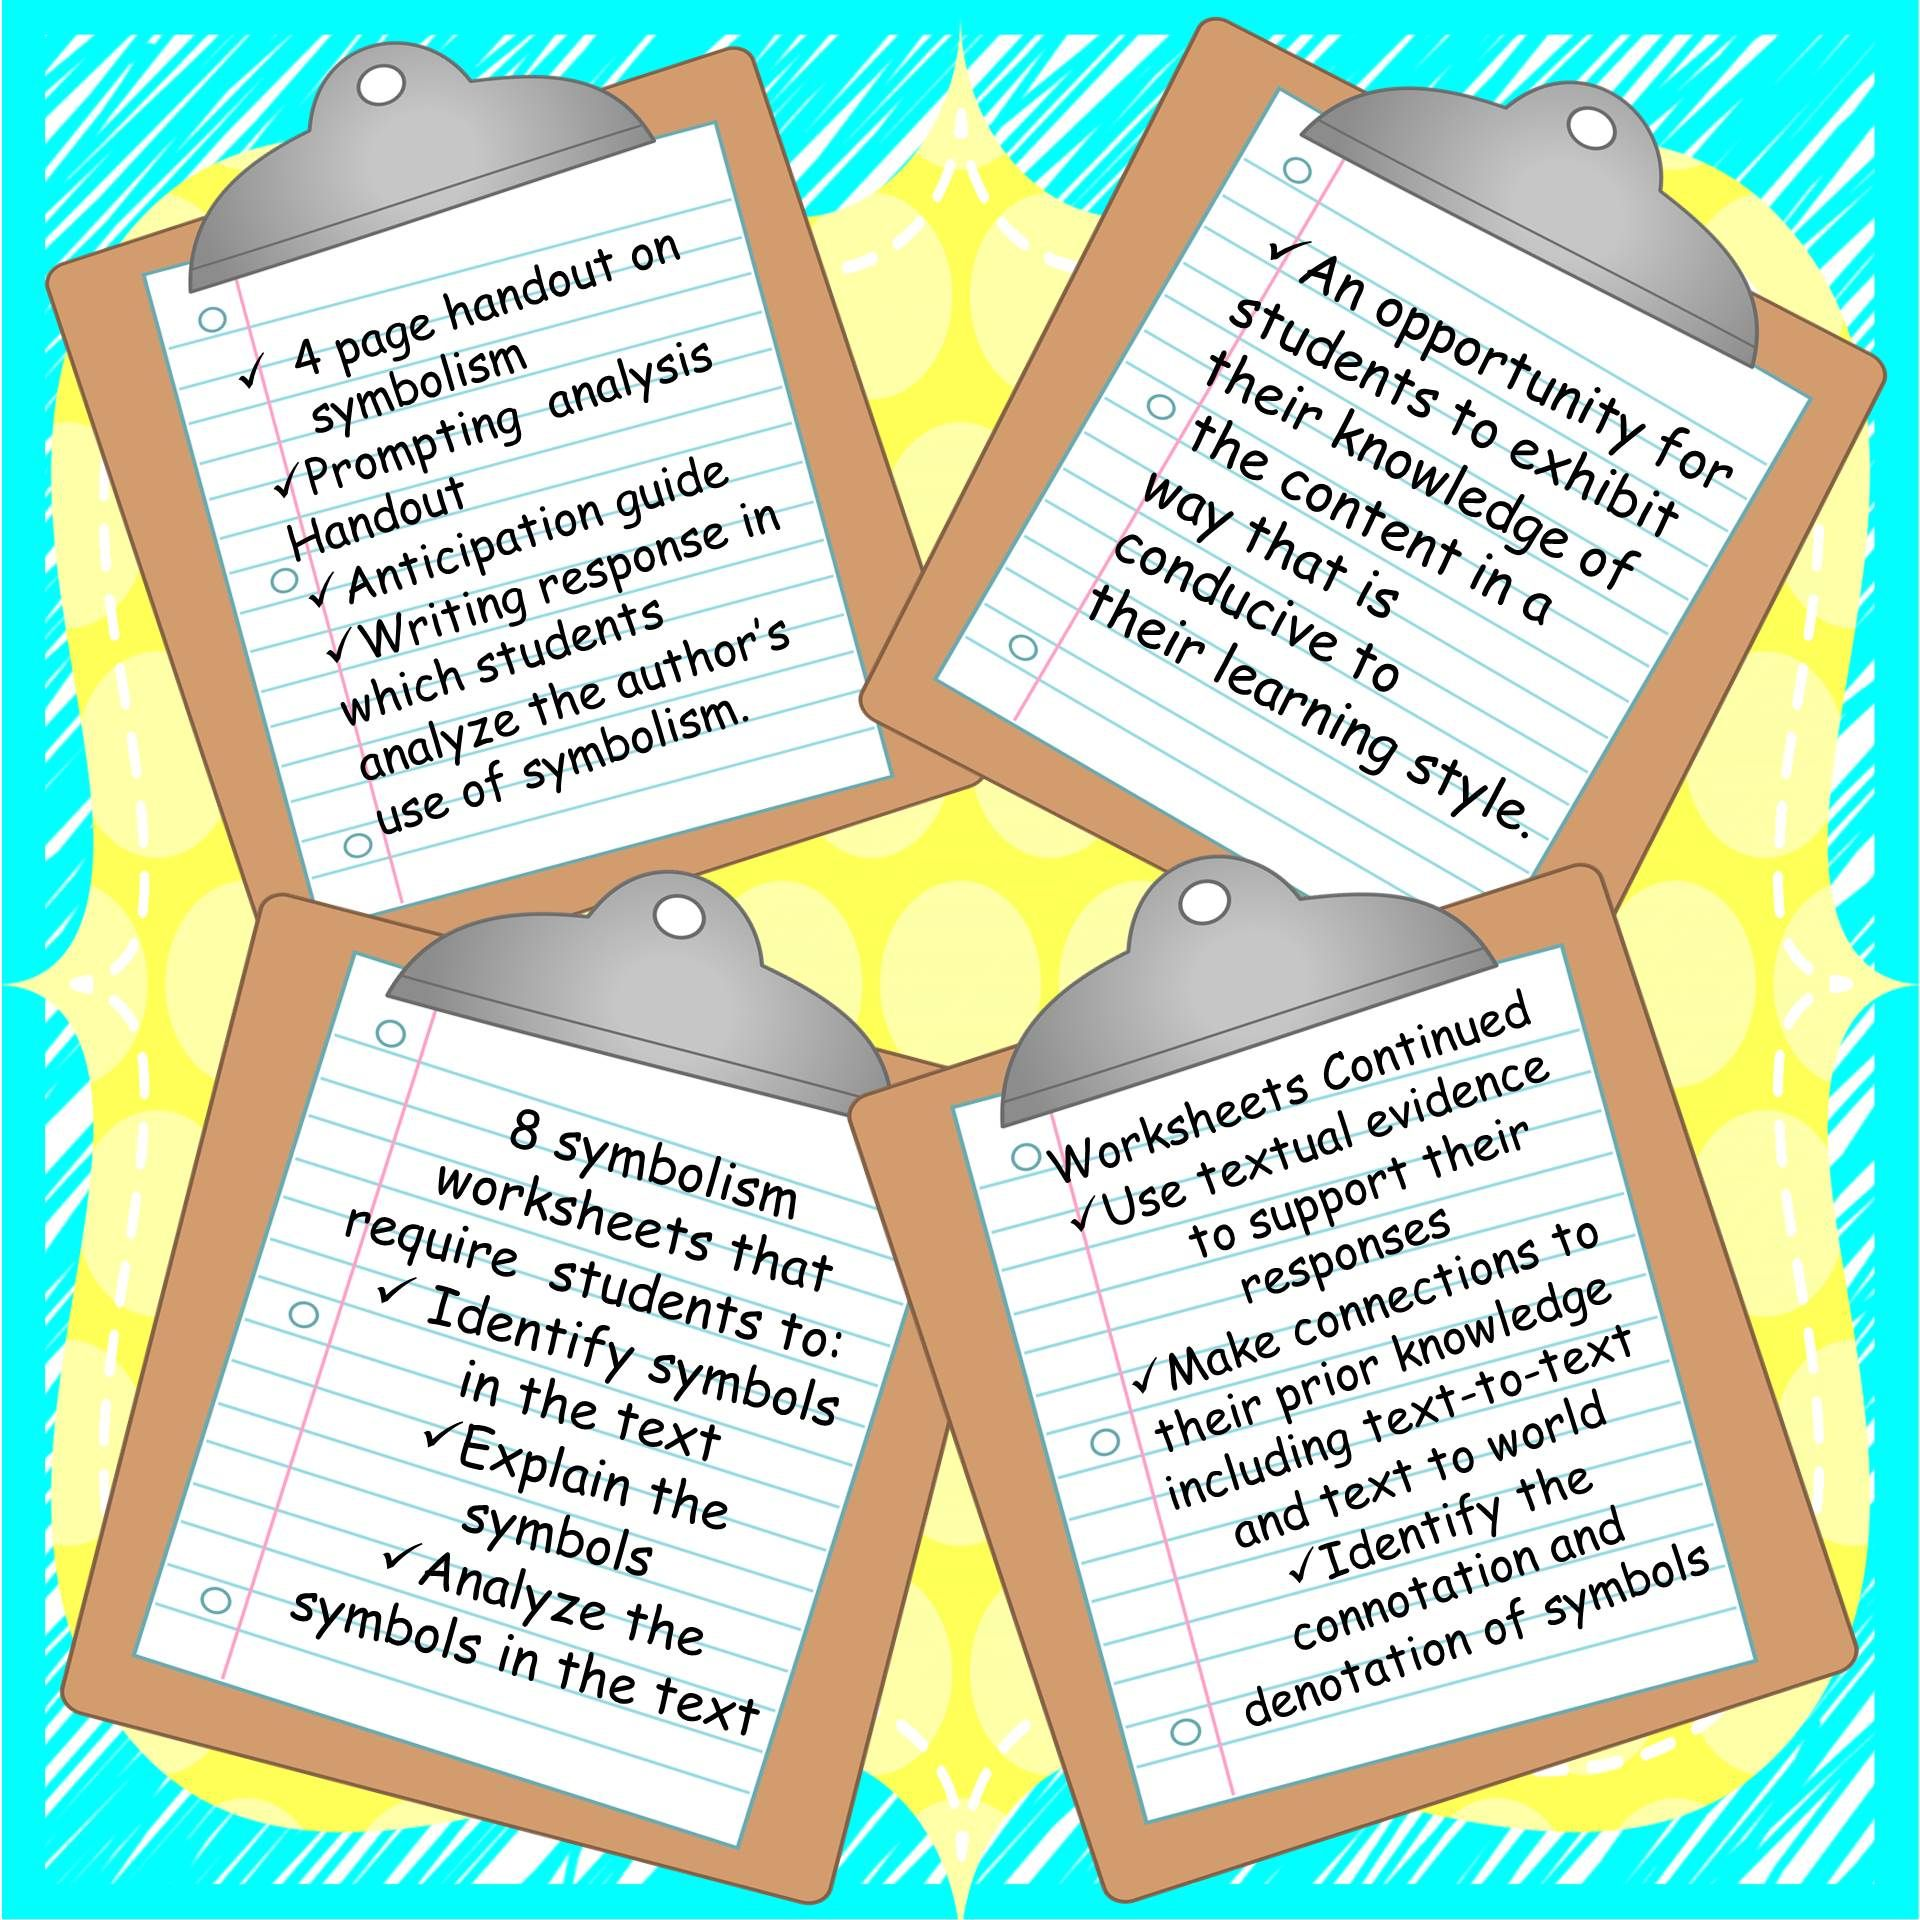 Symbolism Graphic Organizers And Handout For Elementary And Middle